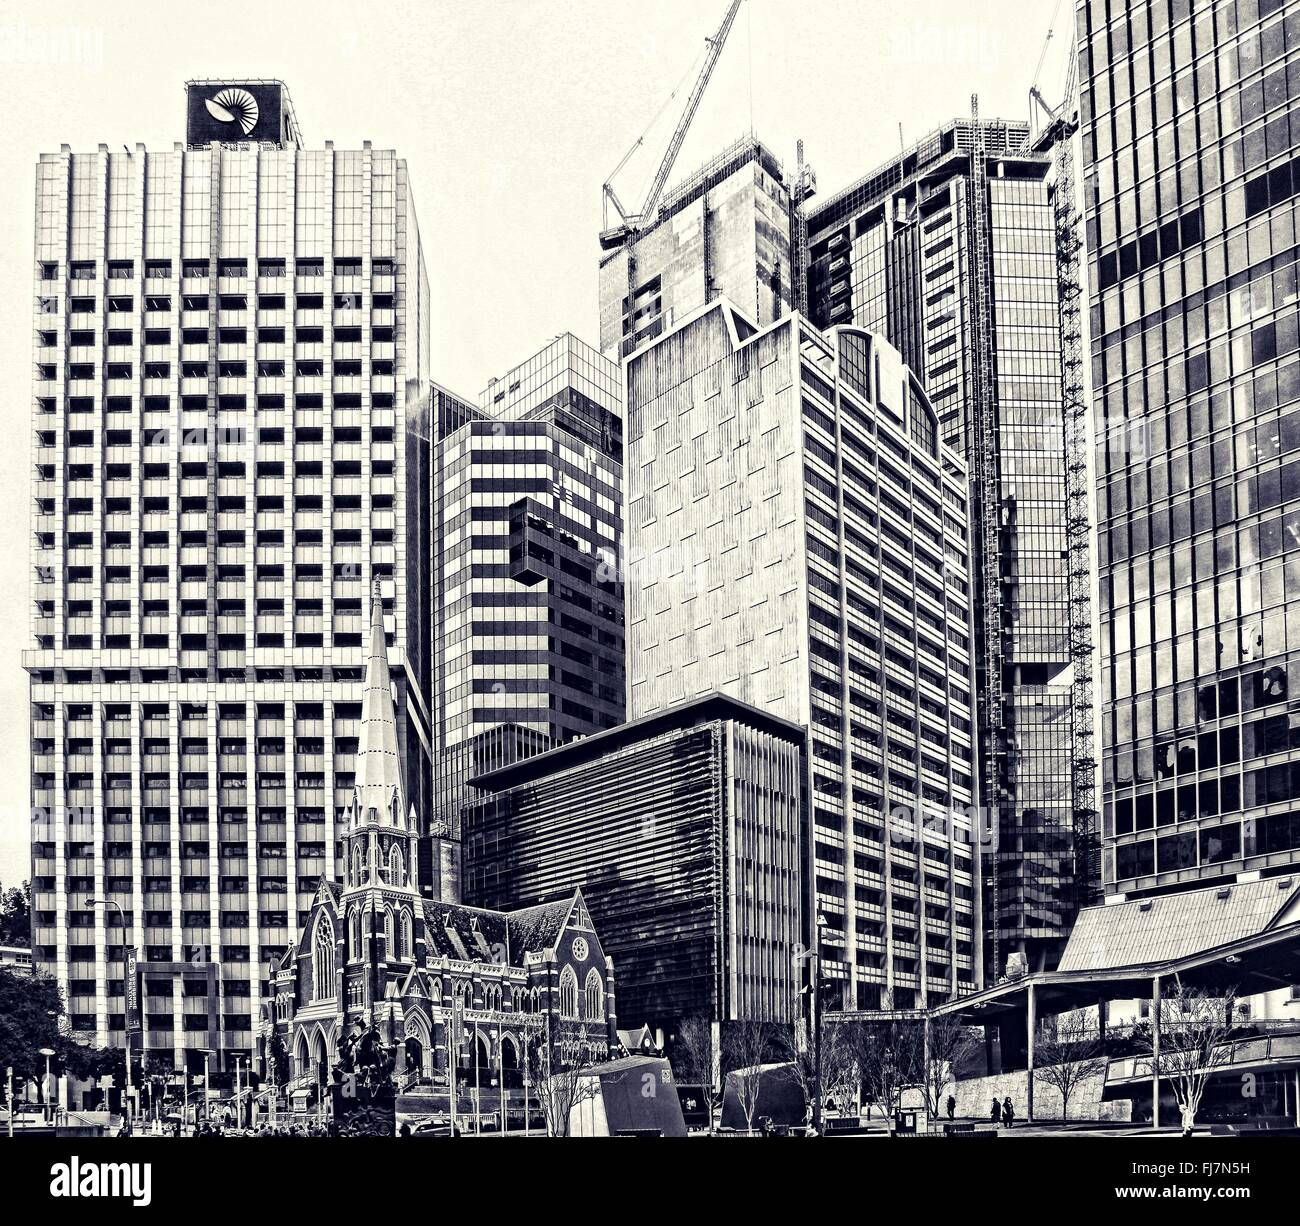 Brisbane city skyline viewed from King George Square in blueprint style - Stock Image